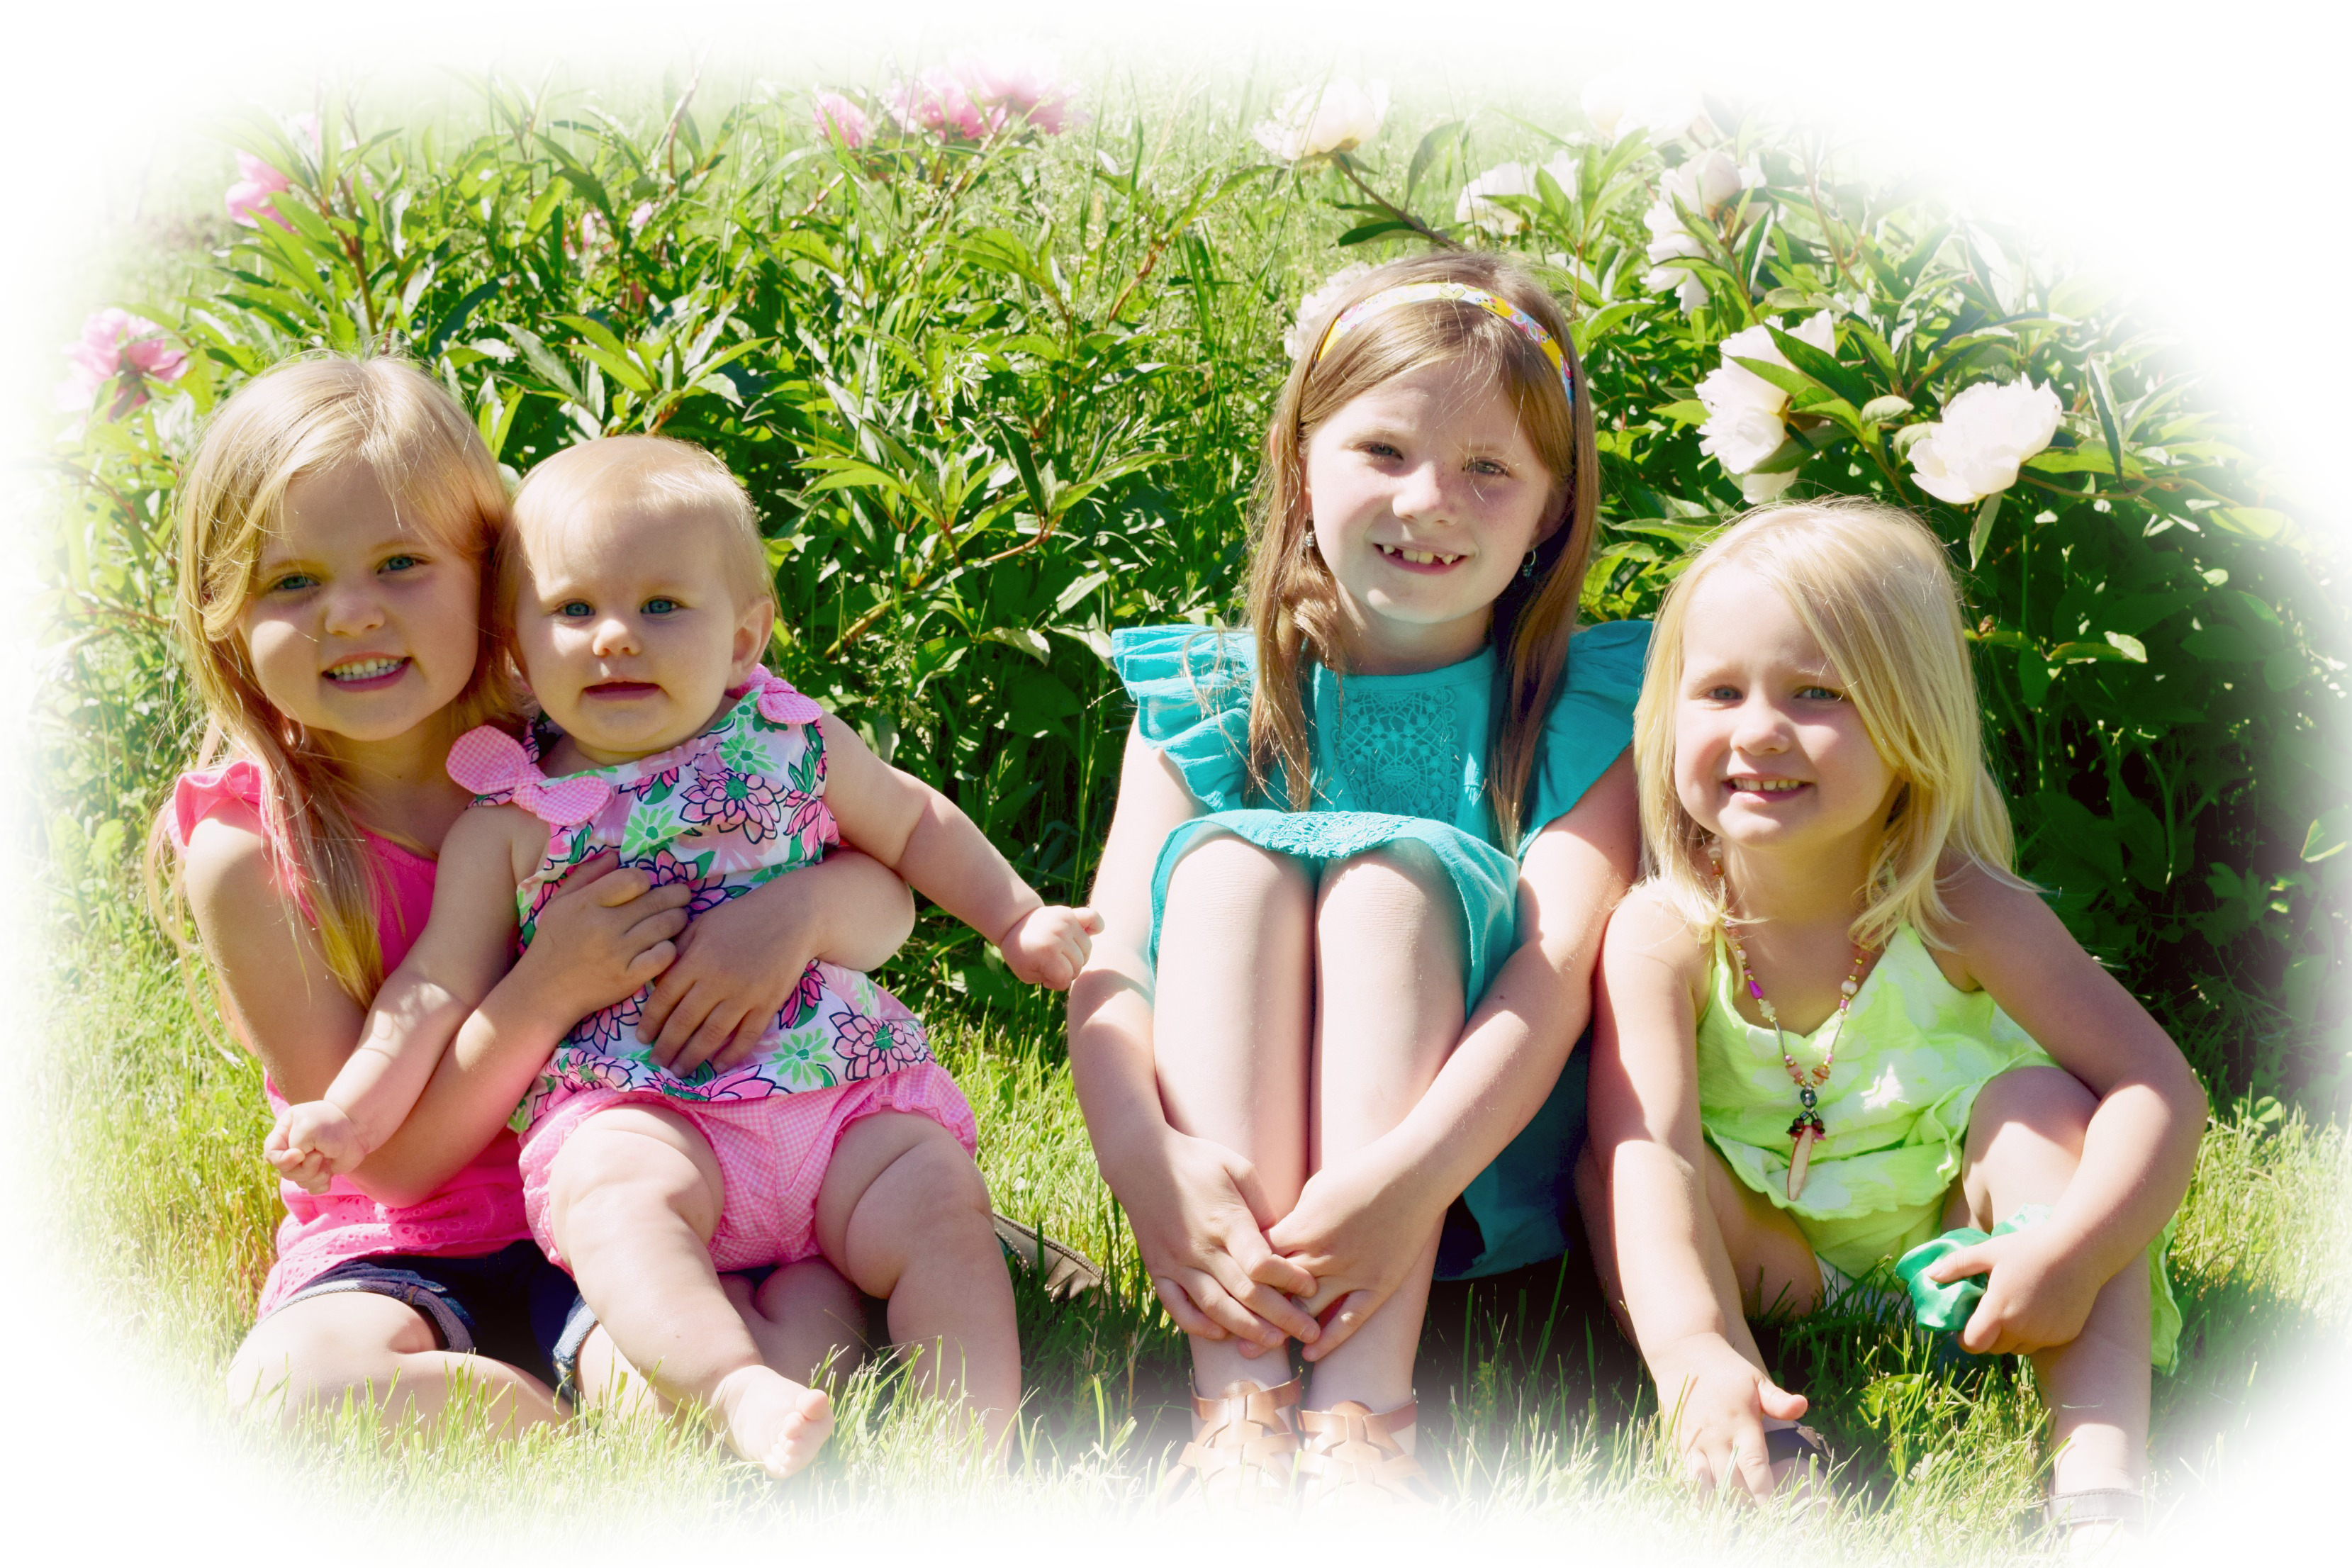 This is an image of four young girls smiling.